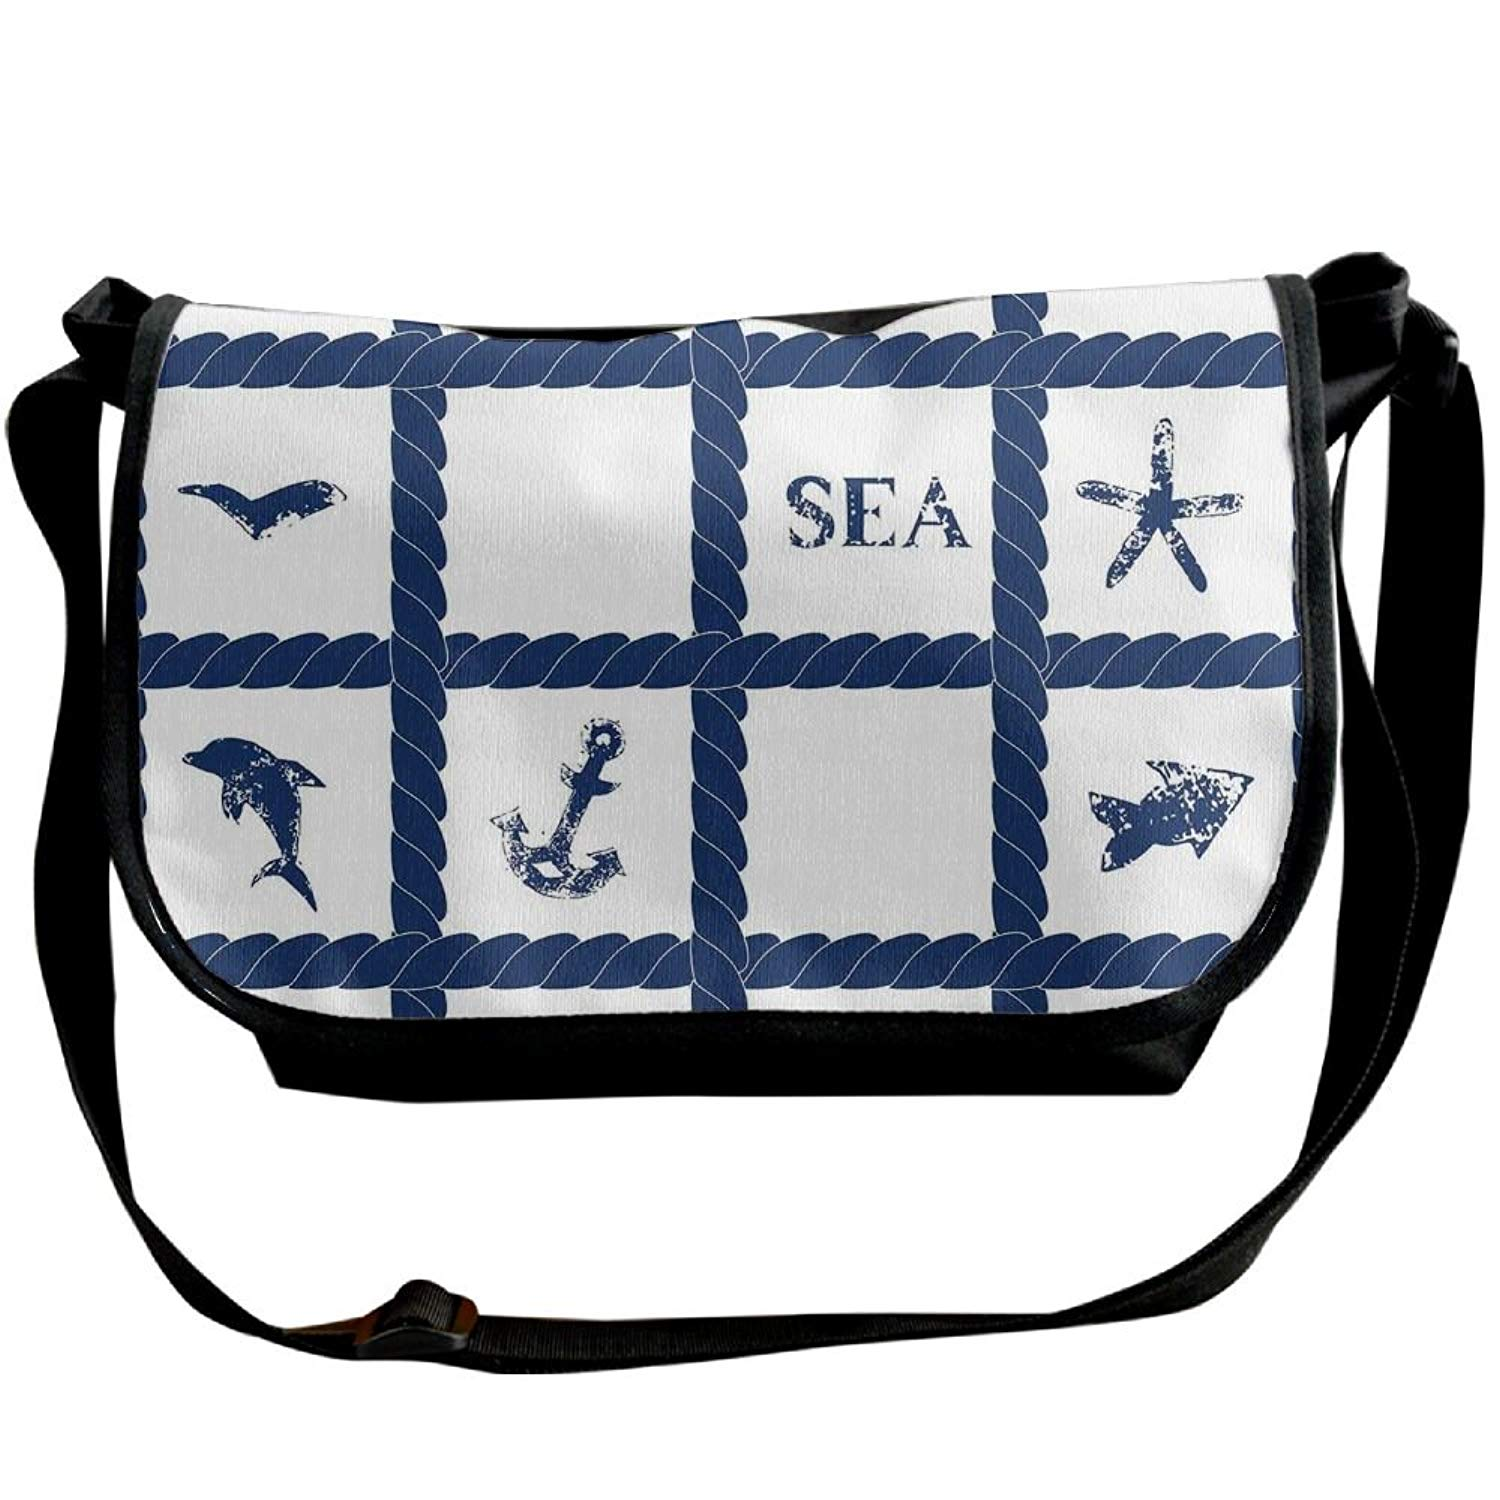 747bd1dd83 Get Quotations · Lovebbag Navy Yacht Rope Used As Frame With Starfish Fish  And Anchor Image Crossbody Messenger Bag